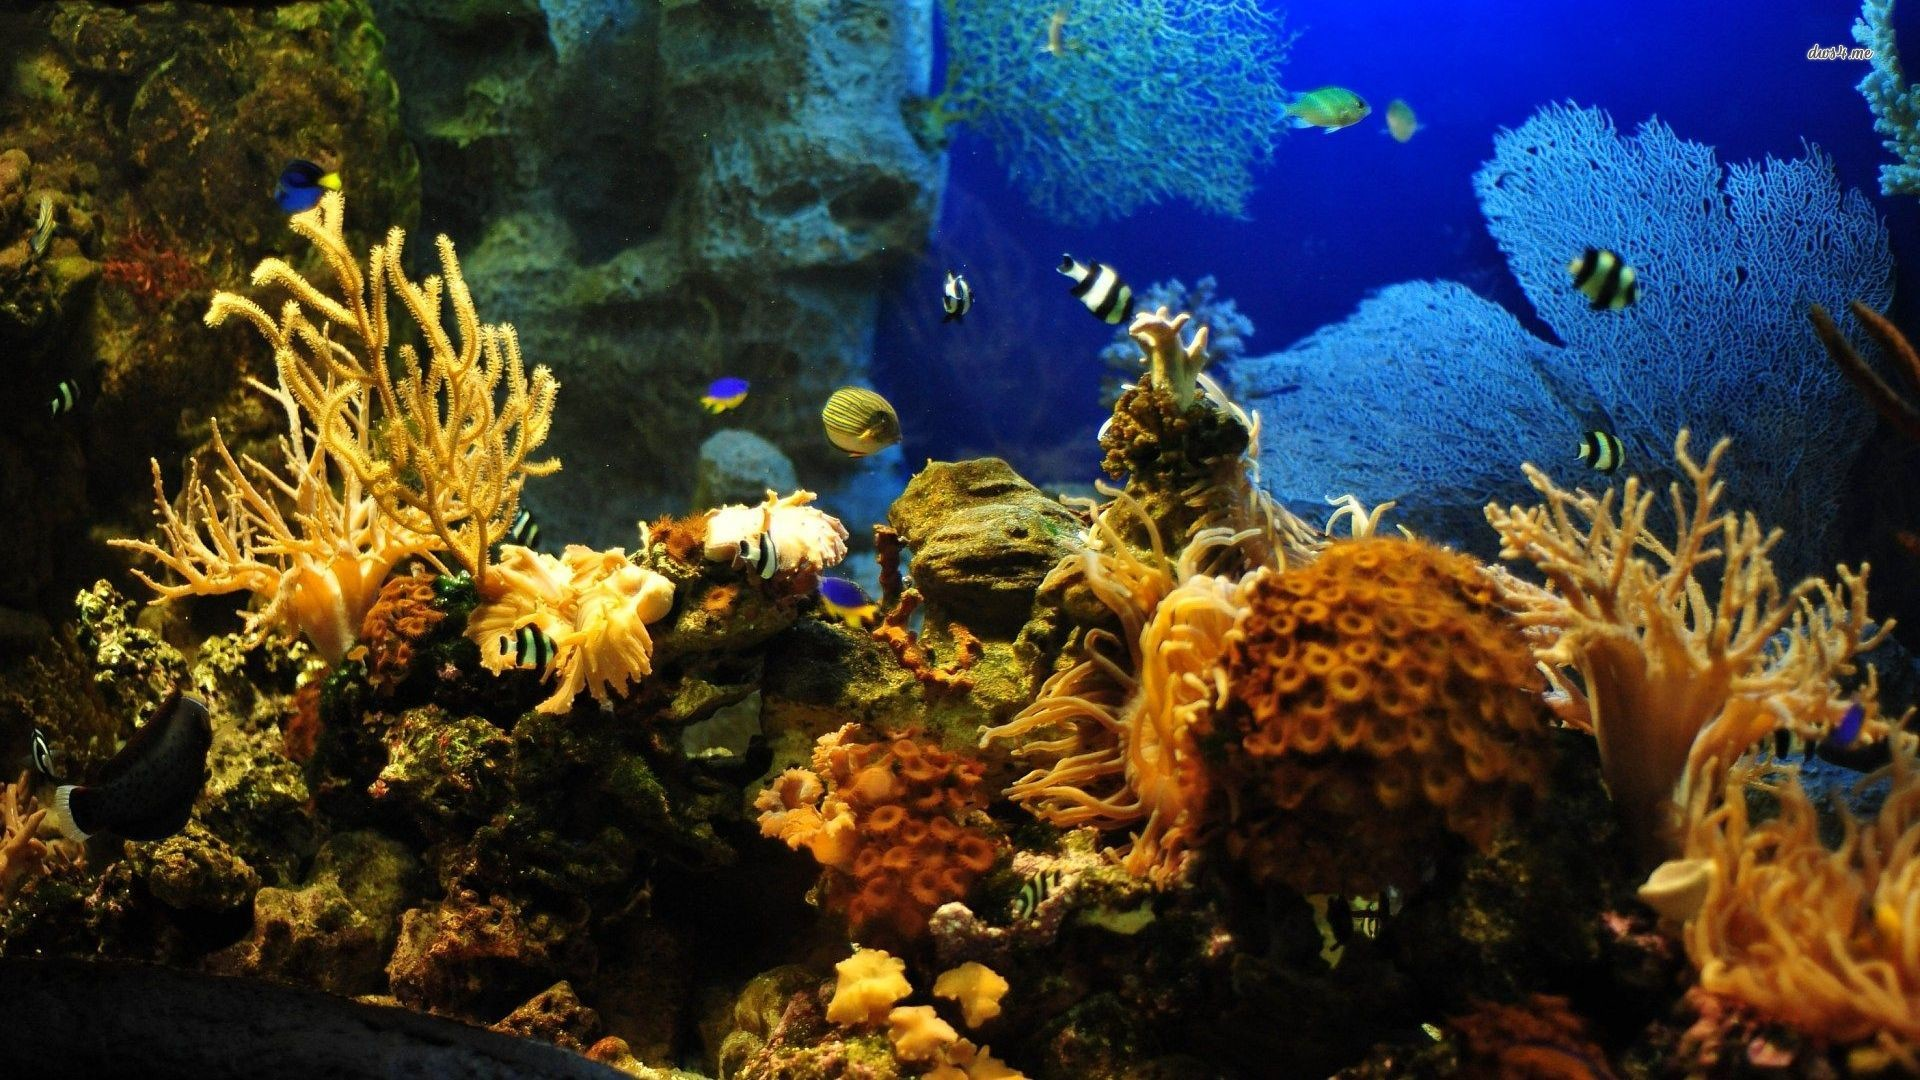 aquarium live wallpaper screenshot source a· tropical fish wallpaper 63 images